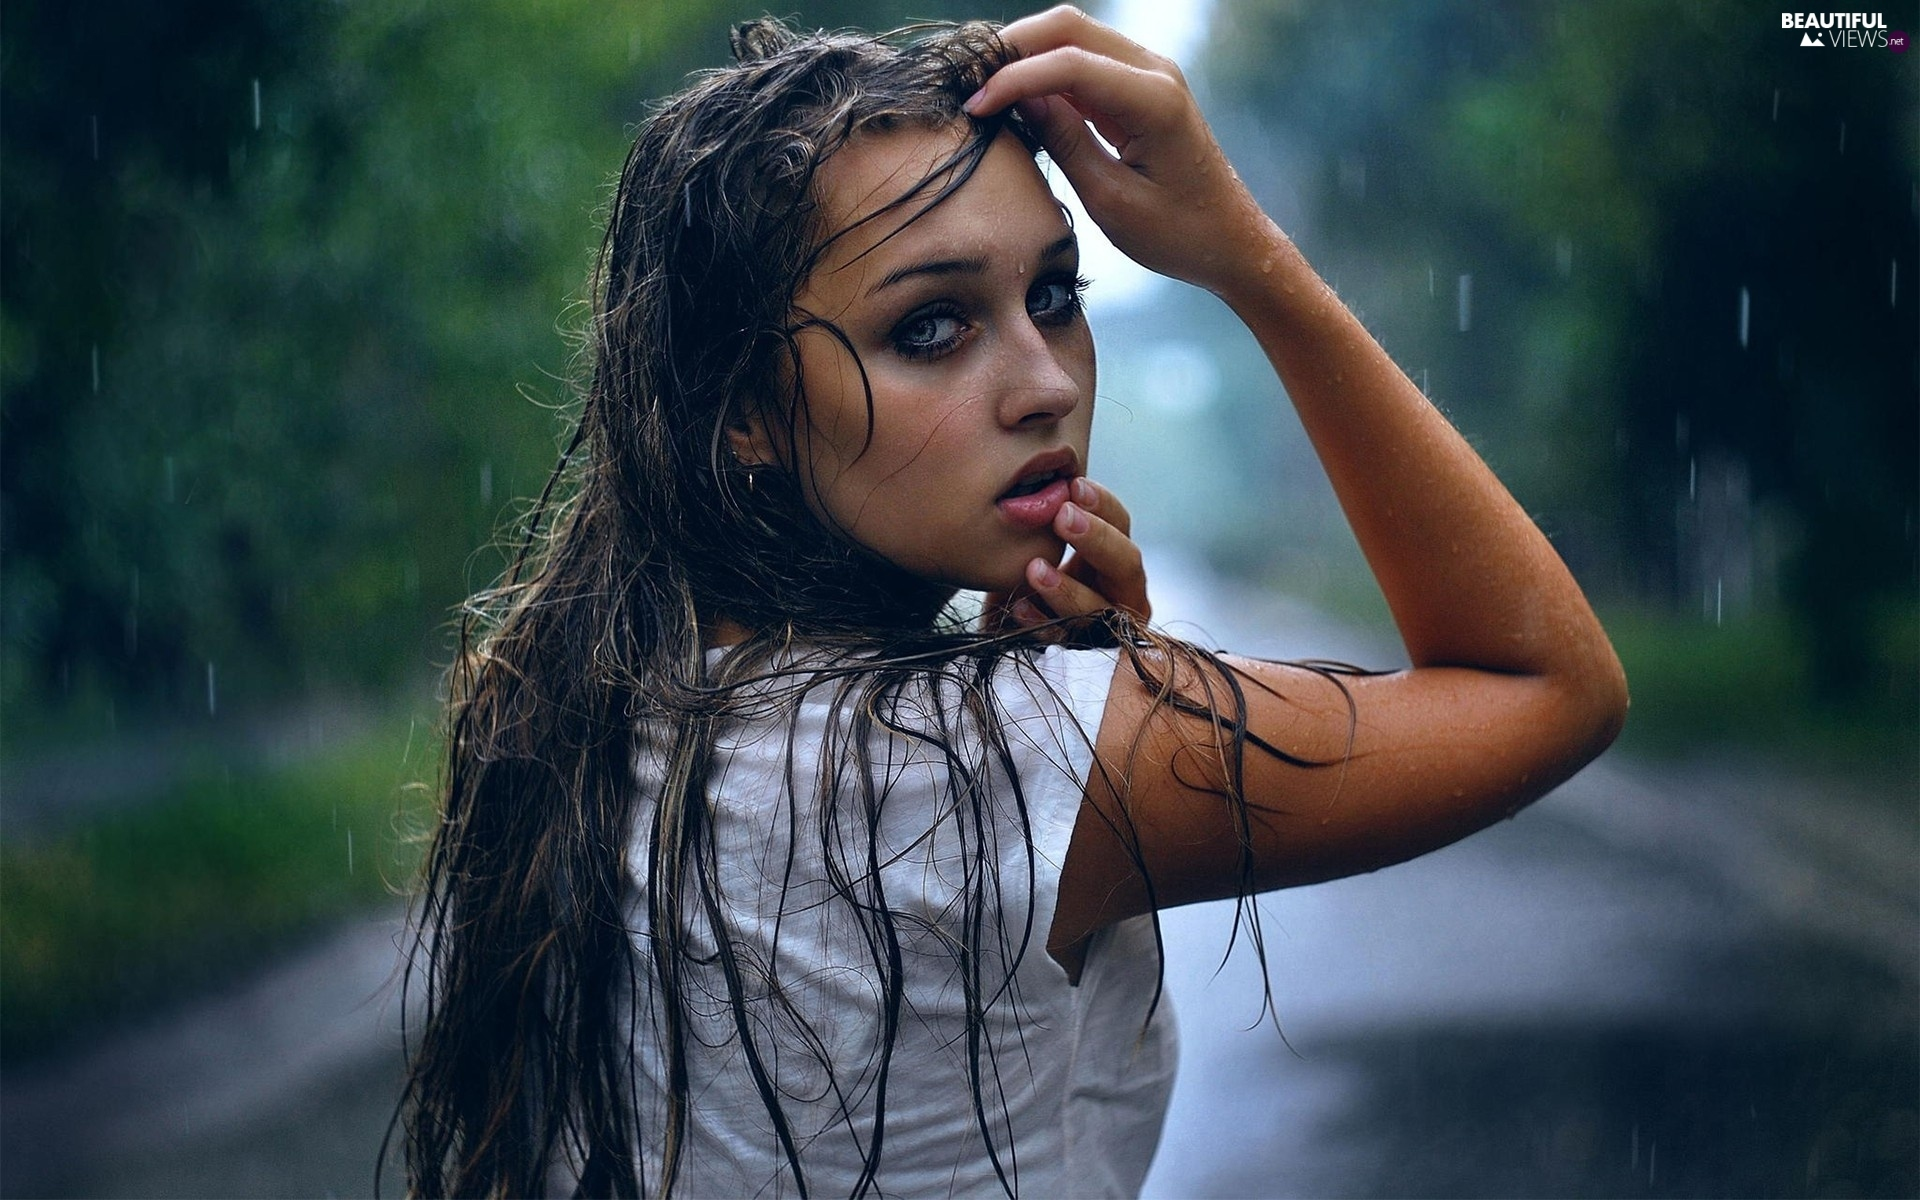 hair, women, make-up, the look, rain, wet - beautiful views